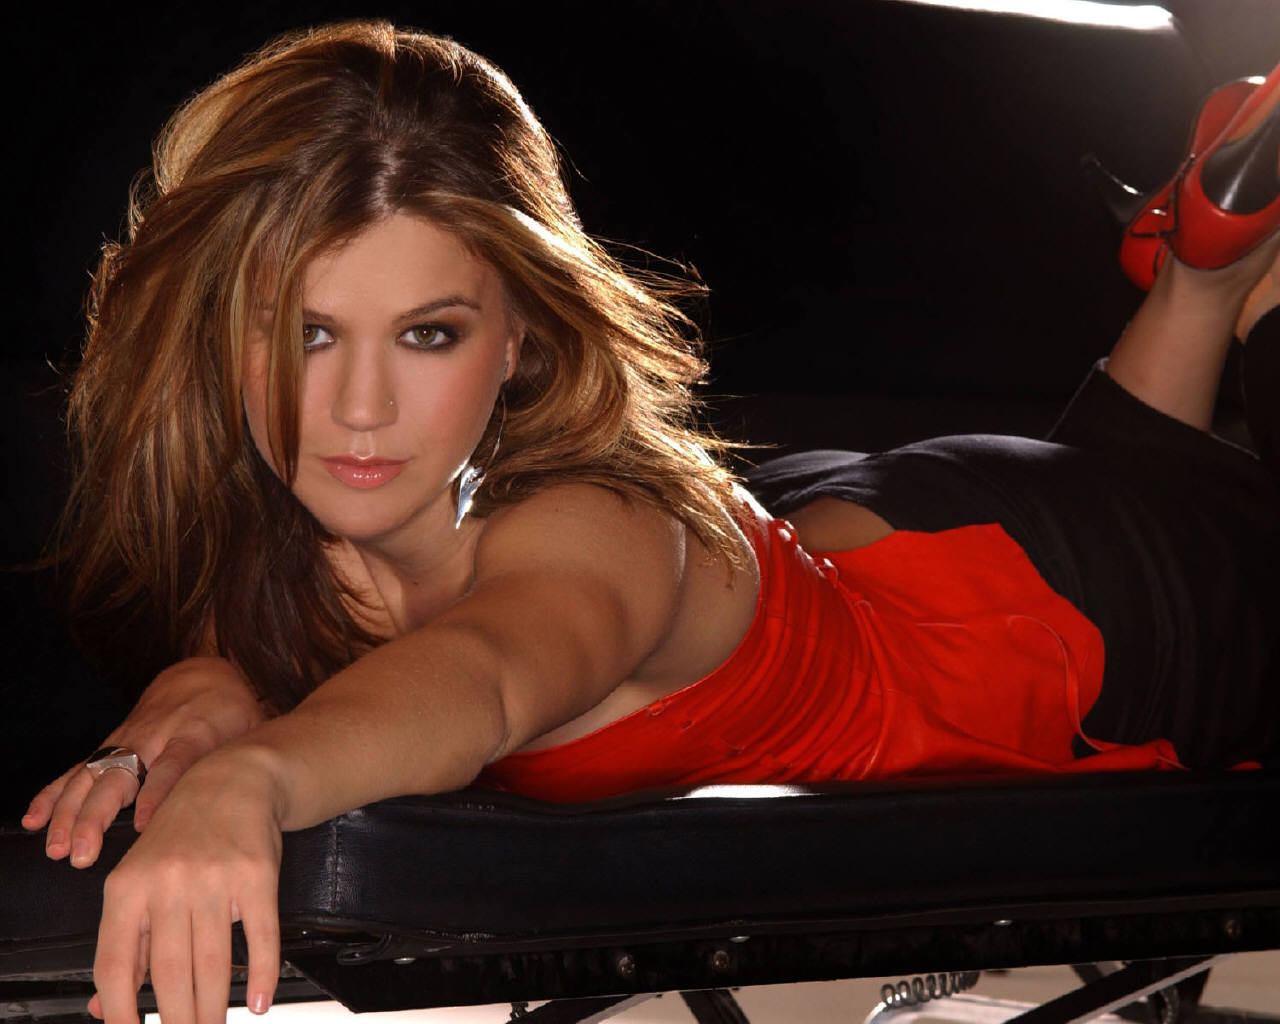 http://3.bp.blogspot.com/-s891SP95Zdg/Tv64HPlC_6I/AAAAAAAAF_4/57zvDSUiL0w/s1600/Kelly-Clarkson-red-bed-hot-2012.jpg